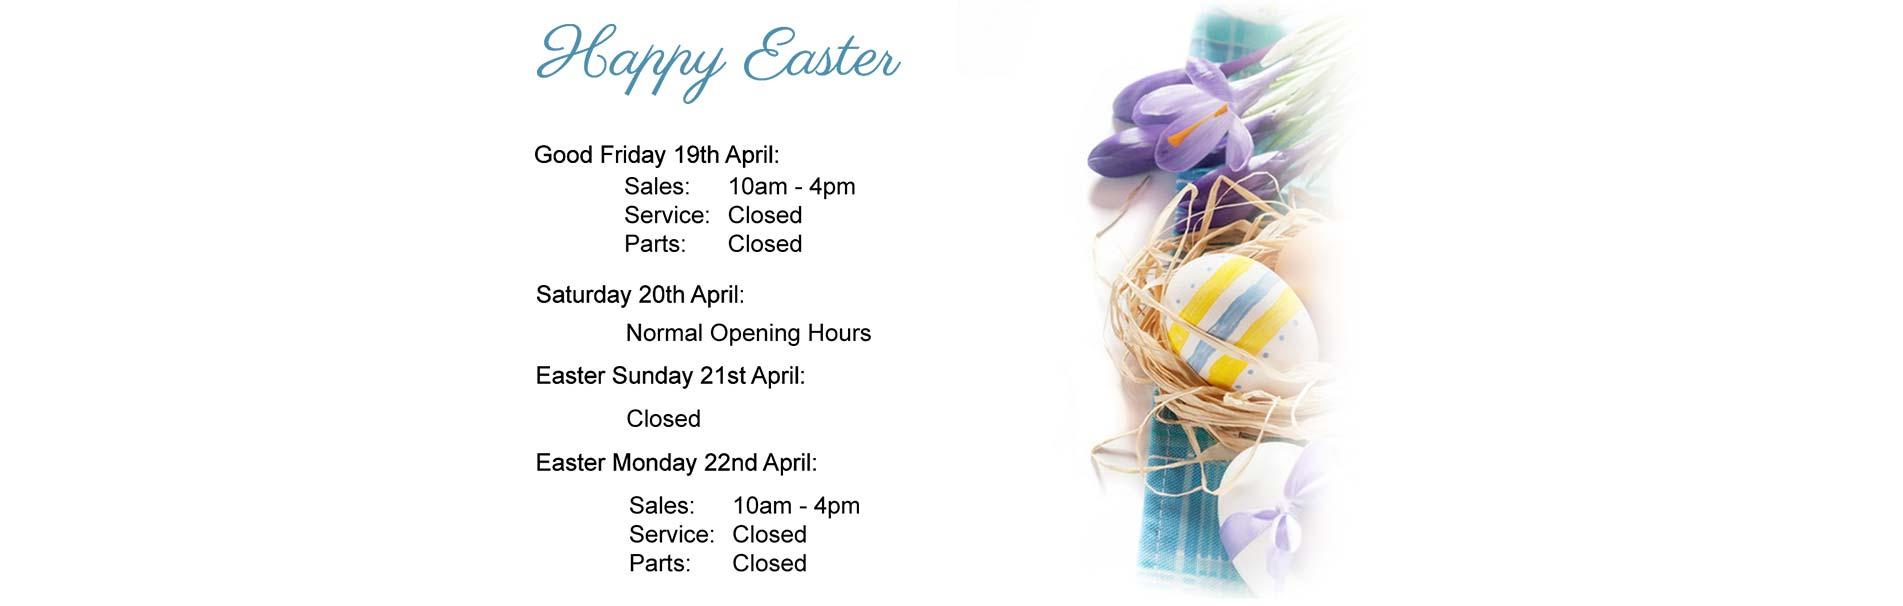 charters-group-easter-opening-hours-sli